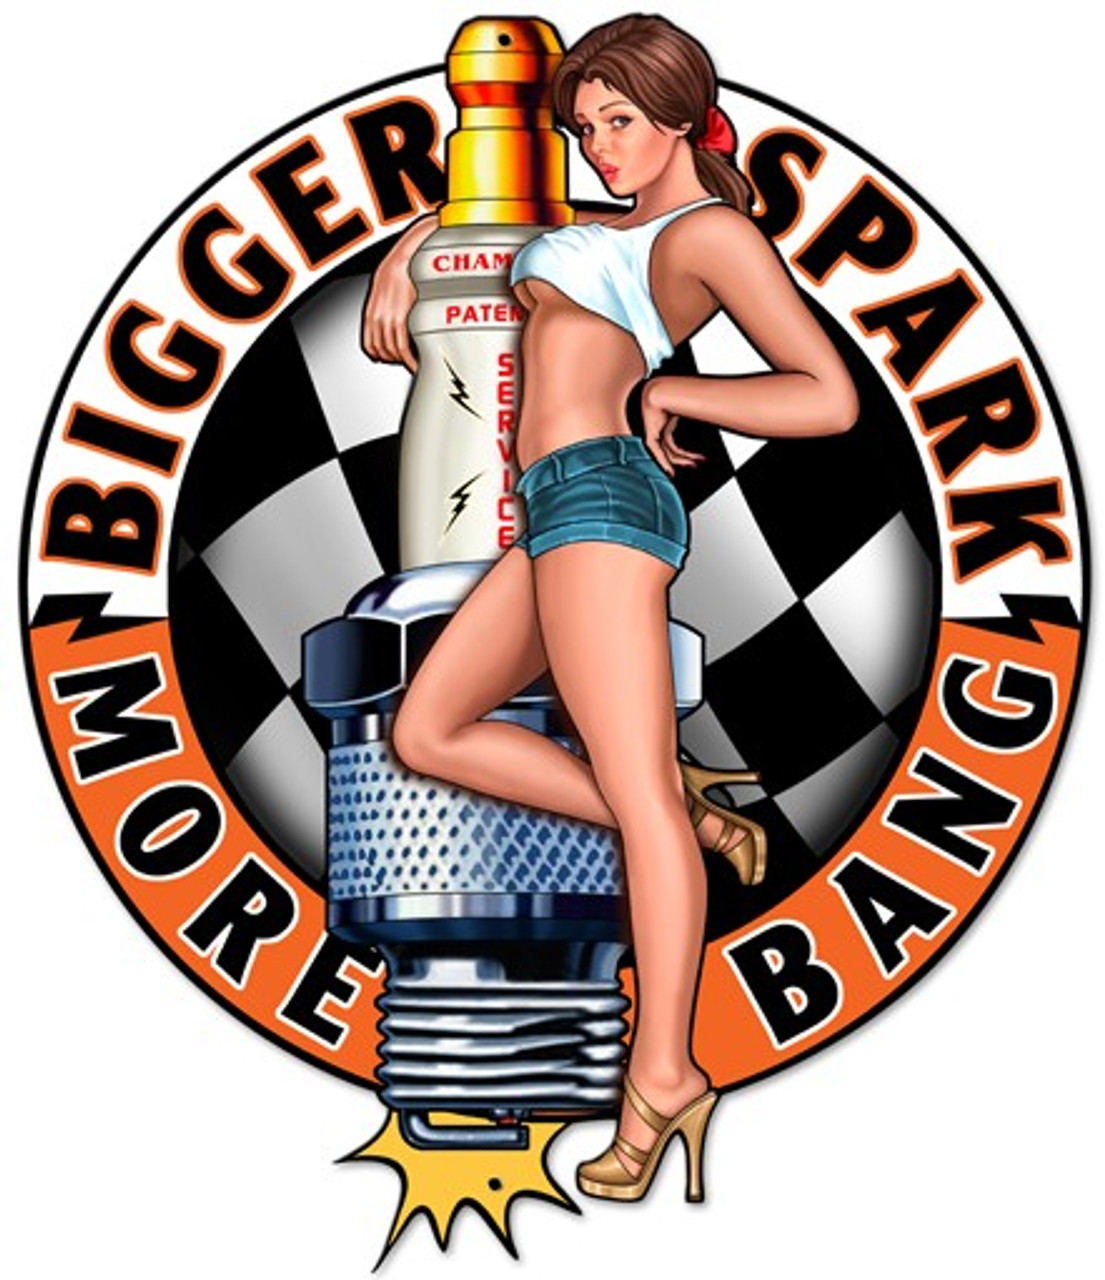 Bigger Sparks Pinup Metal Sign 14 x 16 Inches